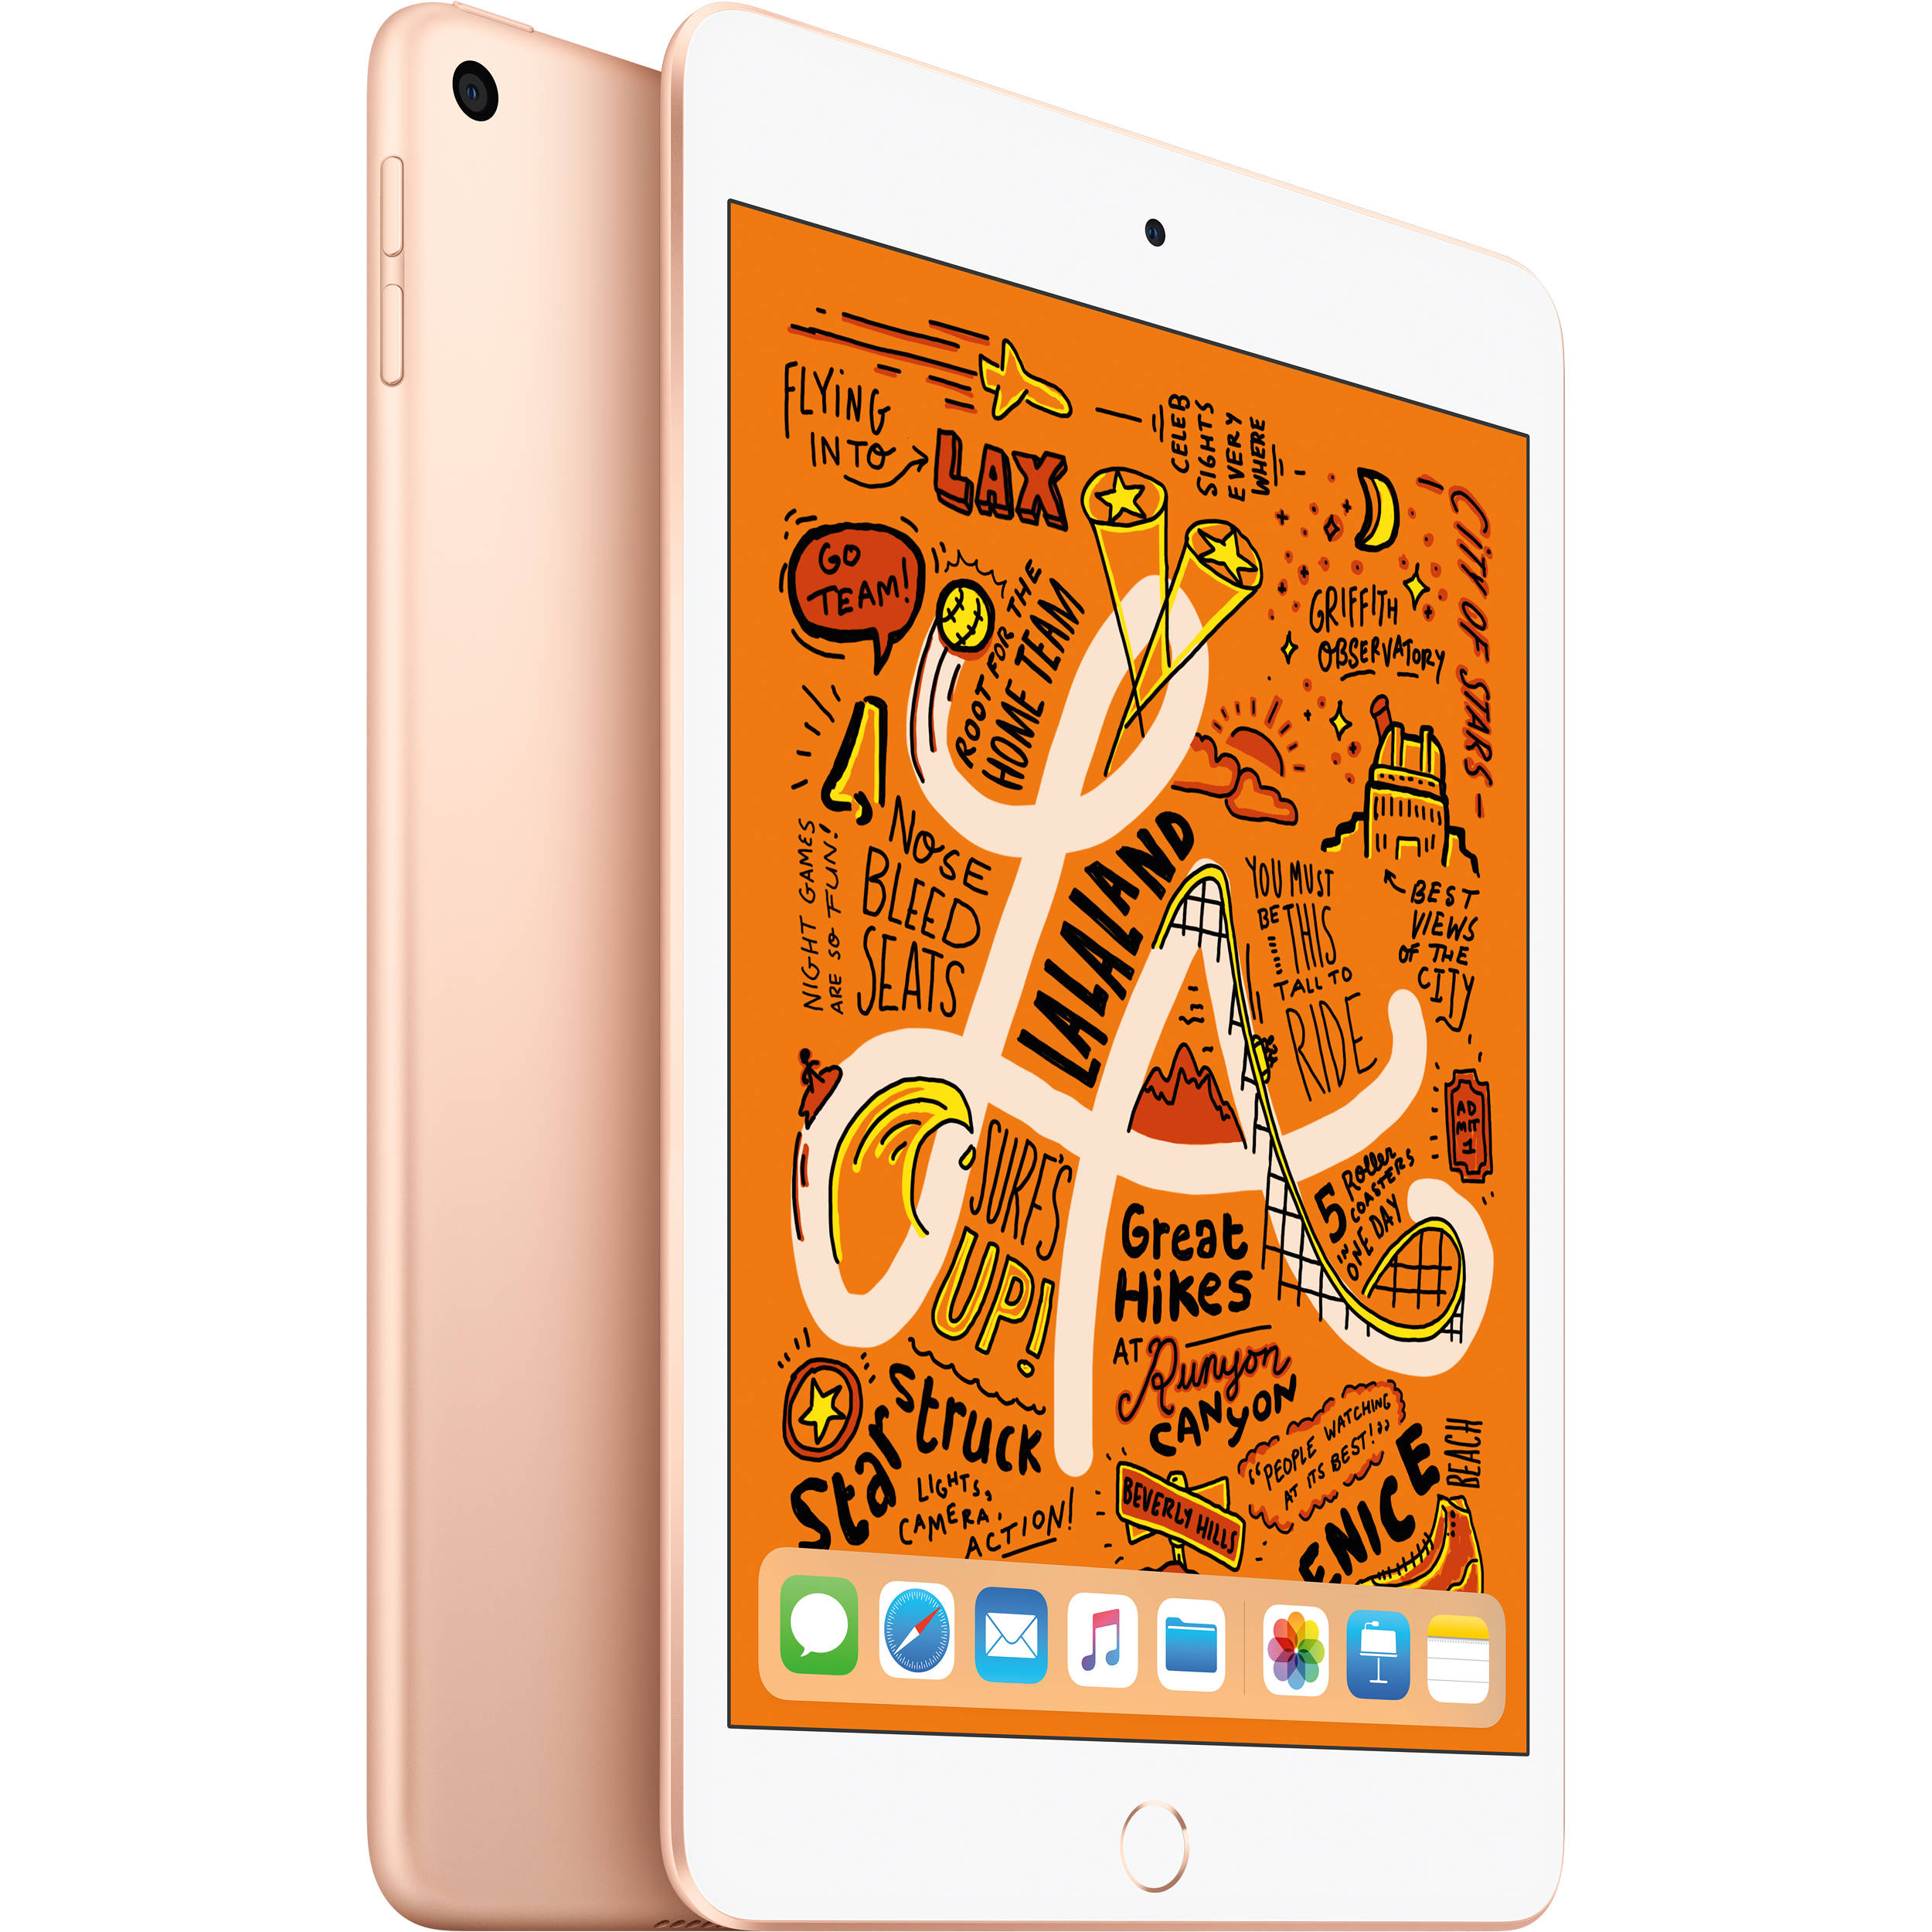 Image of Apple iPad Mini (2019) MUQY2 64GB WiFi - Gold (with 1 year official Apple Warranty)